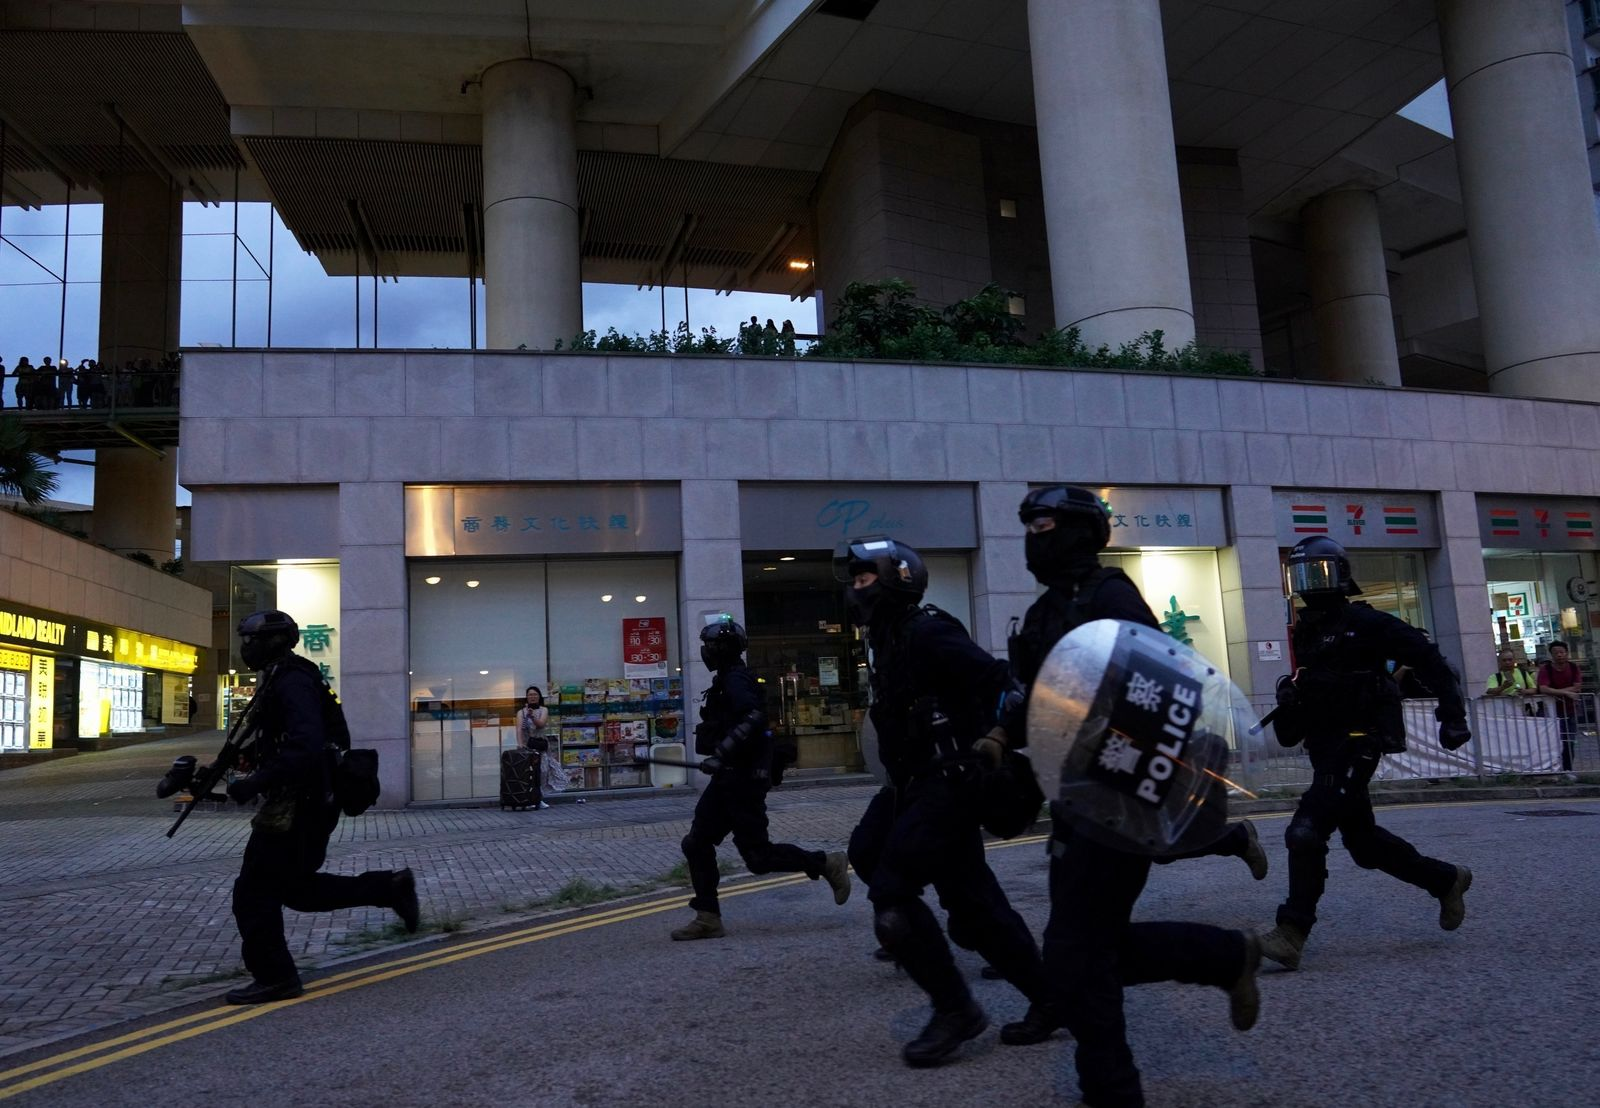 Policemen arrive to arrest protesters at Tung Chung near airport in Hong Kong, Sunday, Sept.1, 2019.{ } (AP Photo/Vincent Yu)